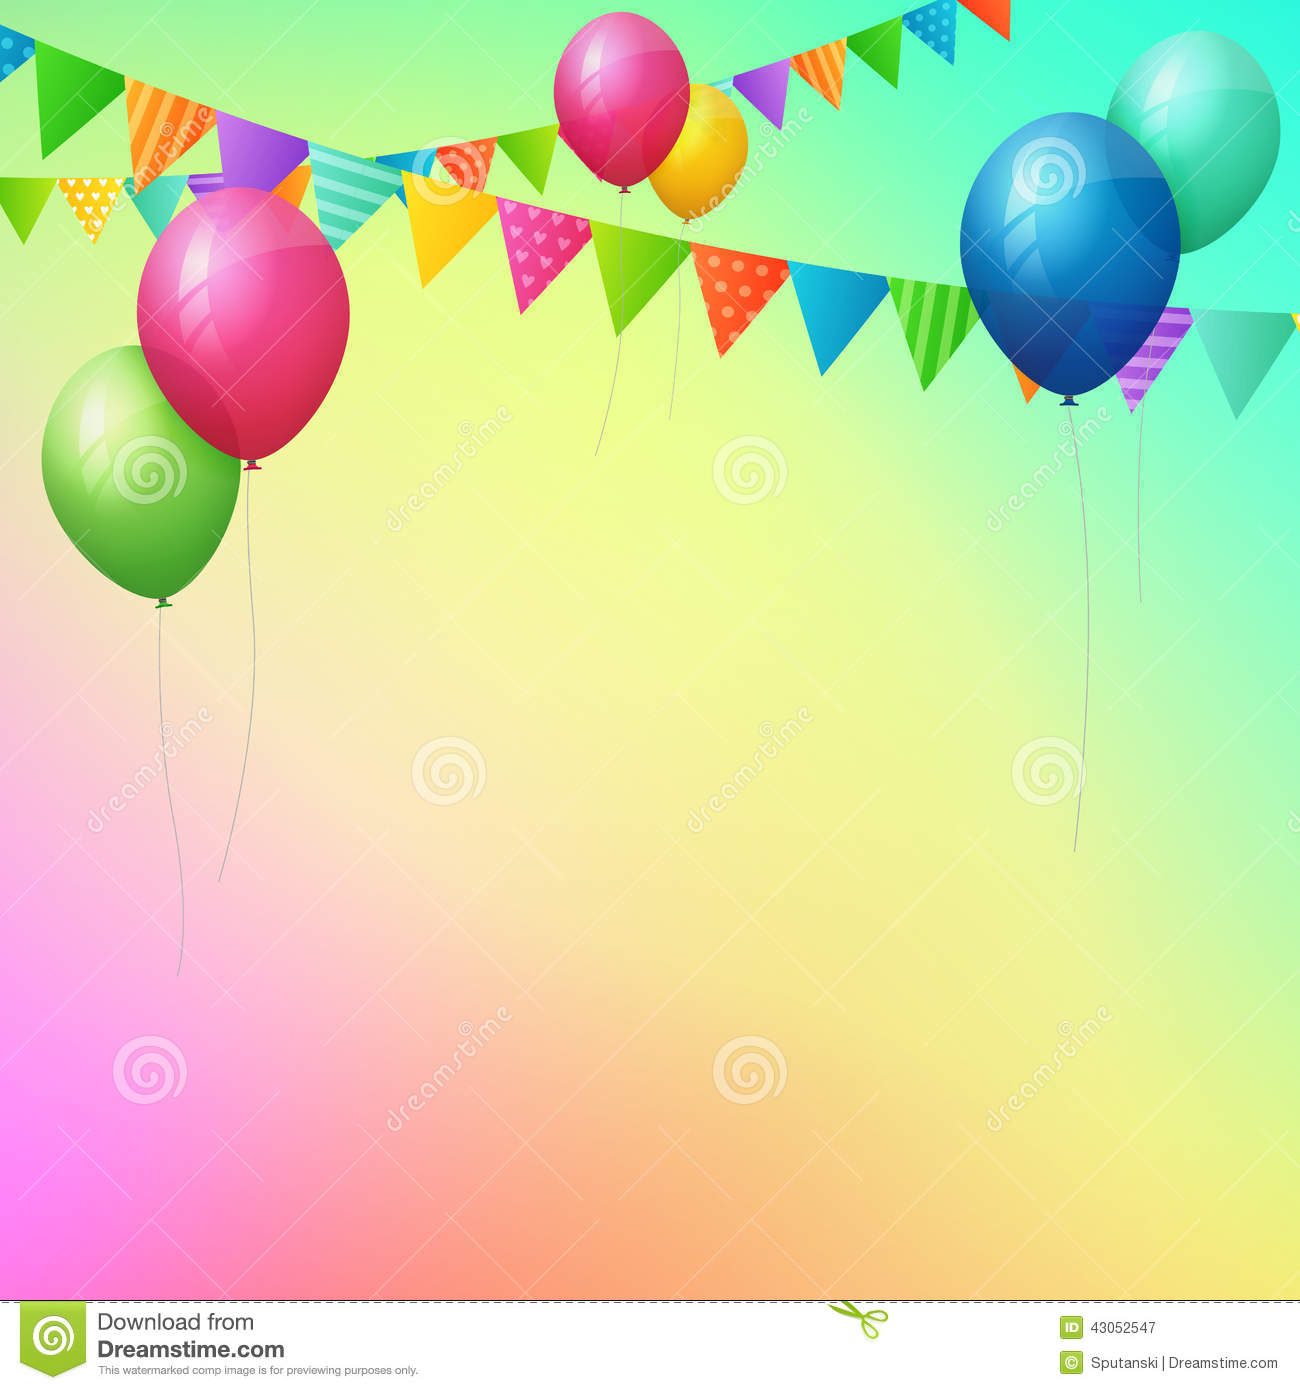 background images for birthday greeting cards ; happy-birthday-greeting-card-colorful-balloons-flags-background-43052547